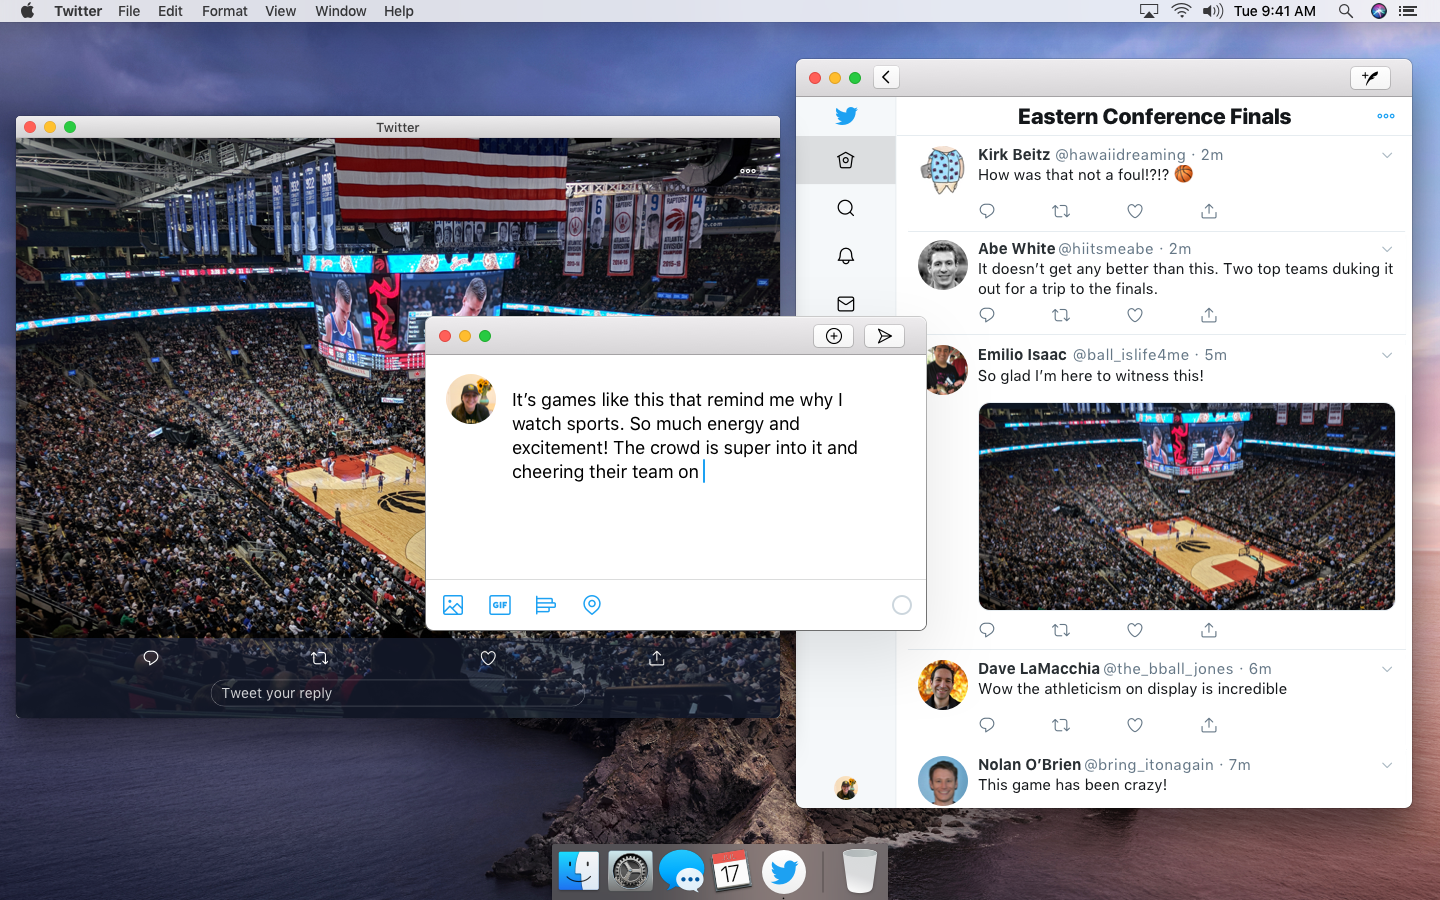 Twitter for Mac is coming back!